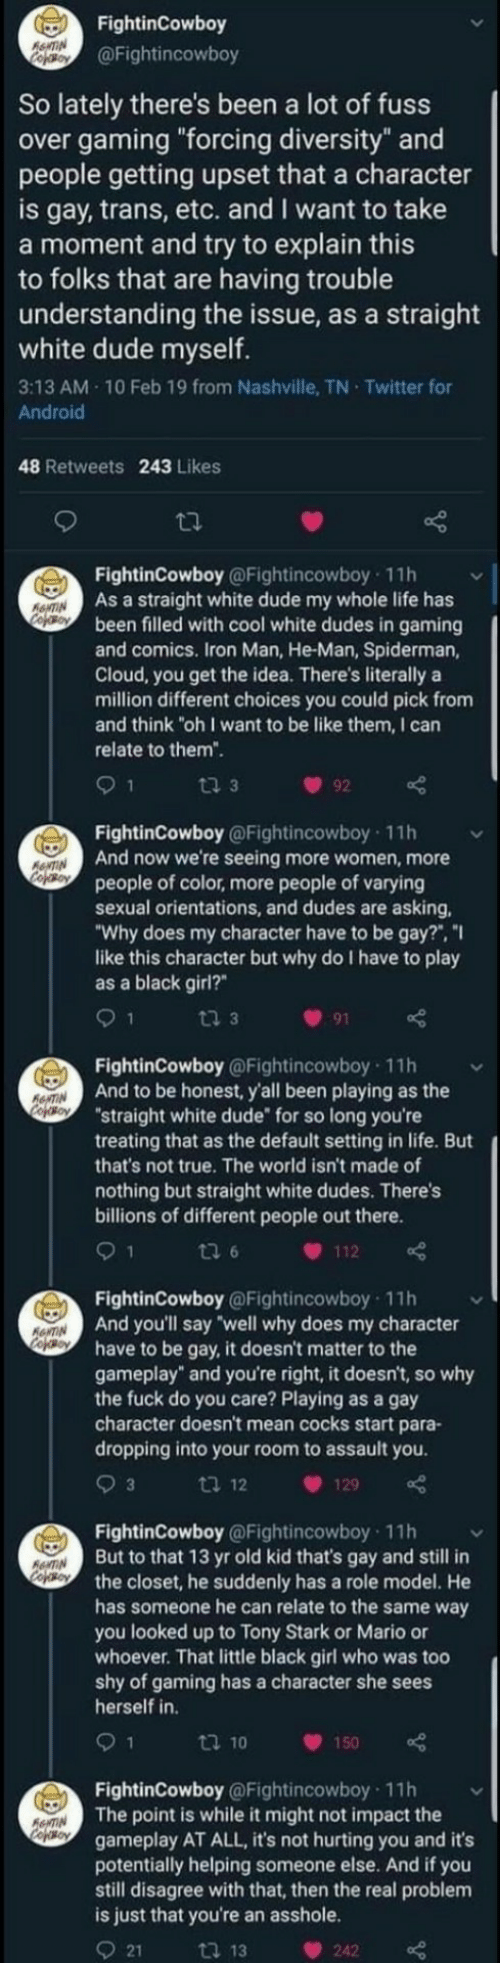 "stark: FightinCowboy  RewTIN  Cefoy  @Fightincowboy  So lately there's been a lot of fuss  over gaming ""forcing diversity"" and  people getting upset that a character  is gay, trans, etc. and I want to take  a moment and try to explain this  to folks that are having trouble  understanding the issue, as a straight  white dude myself.  3:13 AM 10 Feb 19 from Nashville, TN Twitter for  Android  48 Retweets 243 Likes  FightinCowboy @Fightincowboy 11h  As a straight white dude my whole life has  been filled with cool white dudes in gaming  and comics. Iron Man, He-Man, Spiderman,  Cloud, you get the idea. There's literally a  million different choices you could pick from  and think ""oh I want to be like them, I can  ANTIN  Cooy  relate to them"".  ti 3  92  FightinCowboy @Fightincowboy 11h  And now we're seeing more women, more  people of color, more people of varying  sexual orientations, and dudes are asking  ""Why does my character have to be gay?"", ""I  like this character but why do I have to play  as a black girl?  ANTIN  CofoBoy  9 1  ti 3  91  FightinCowboy @Fightincowboy 11h  And to be honest, y'all been playing as the  ""straight white dude for so long you're  treating that as the default setting in life. But  that's not true. The world isn't made of  RNTIN  CopOBoY  nothing but straight white dudes. There's  billions of different people out there.  1  ti 6  112  FightinCowboy @Fightincowboy 11h  And you'll say well why does my character  have to be gay, it doesn't matter to the  gameplay"" and you're right, it doesn't, so why  the fuck do you care? Playing as a gay  character doesn't mean cocks start para-  dropping into your room to assault you  ANTIN  cofeo  3  ti 12  129  FightinCowboy @Fightincowboy 11h  But to that 13 yr old kid that's gay and still in  the closet, he suddenly has a role model. He  has someone he can relate to the same way  you looked up to Tony Stark or Mario or  whoever. That little black girl who was too  shy of gaming has a character she sees  herself in  AANTIN  Cojso  9 1  t 10  150  FightinCowboy @Fightincowboy 11h  The point is while it might not impact the  gameplay AT ALL, it's not hurting you and it's  potentially helping someone else. And if you  still disagree with that, then the real problem  is just that you're an asshole.  AeNTIN  Cofeso  21  ti 13  242"